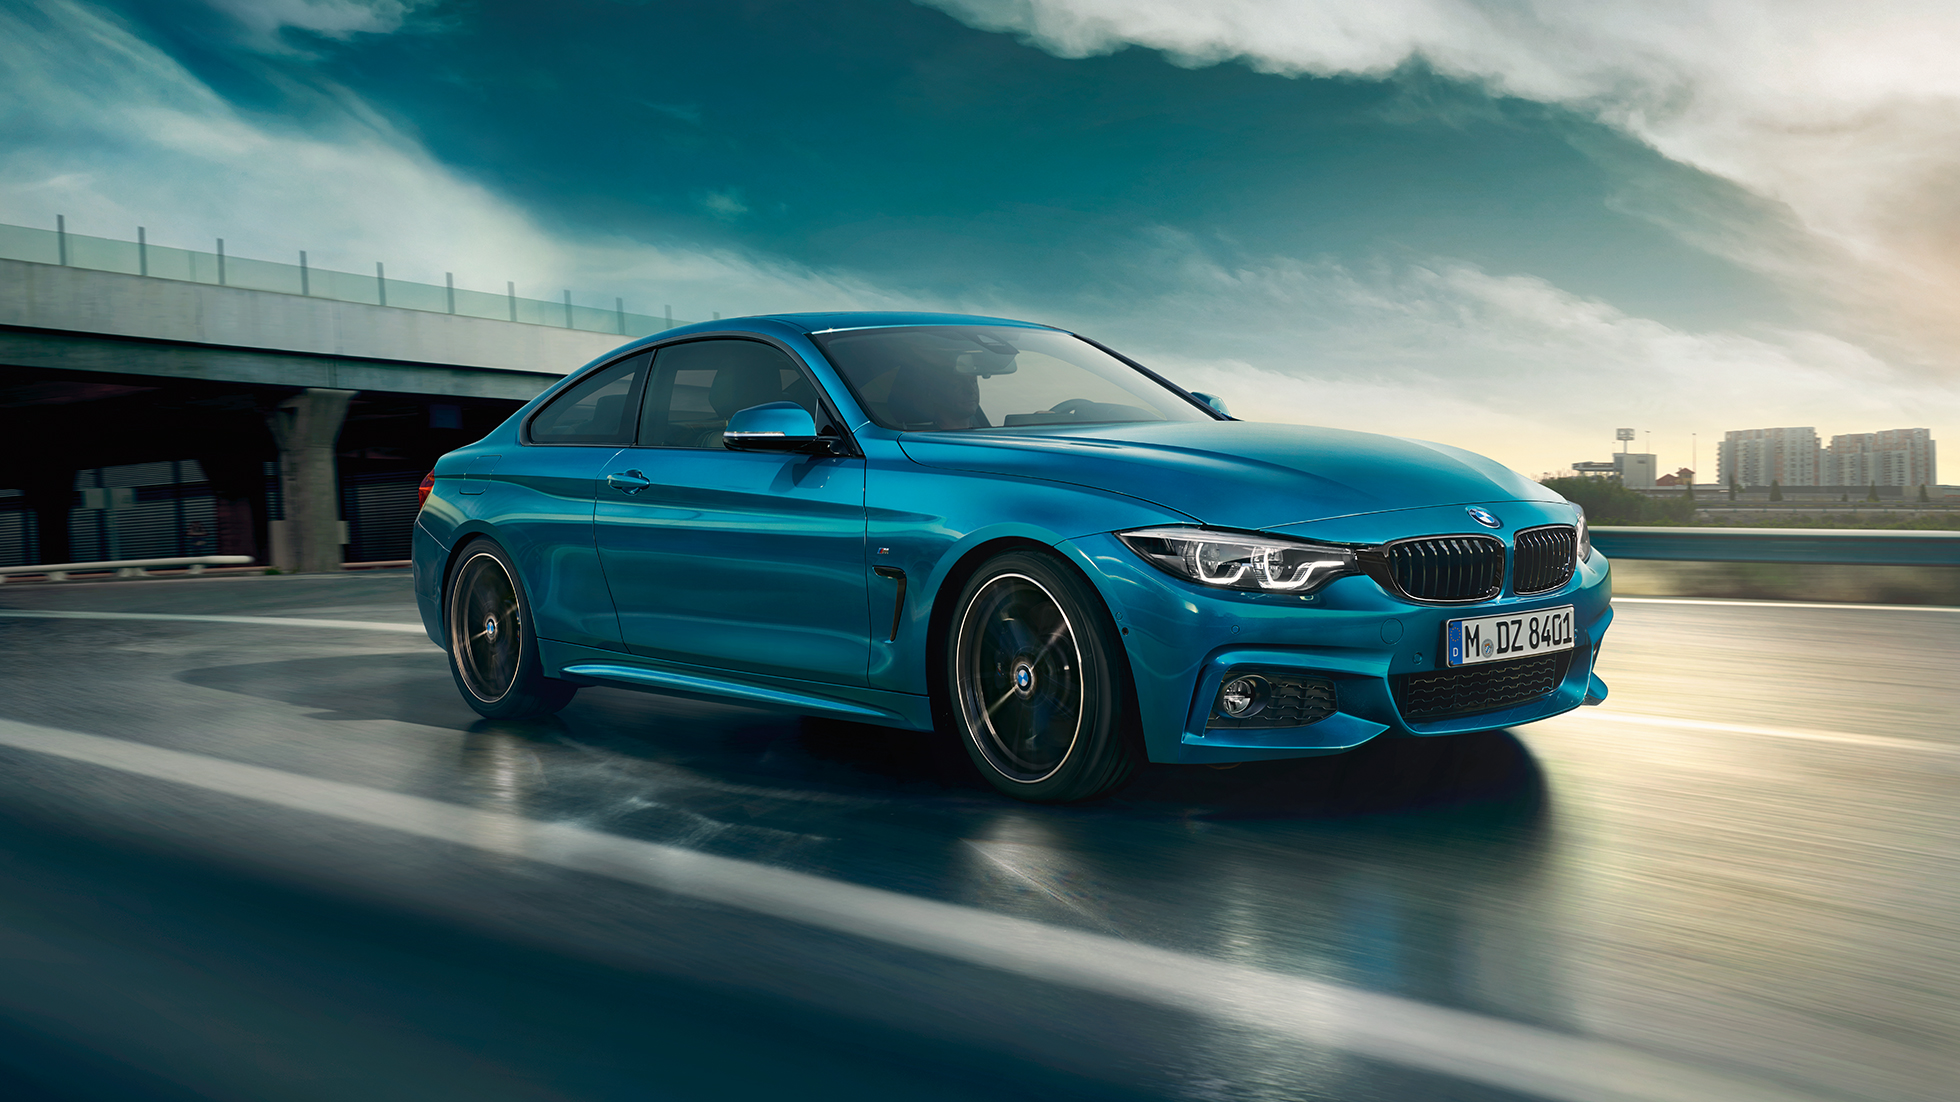 bmw-4-series-coupe-inspire-highlight-desktop-04